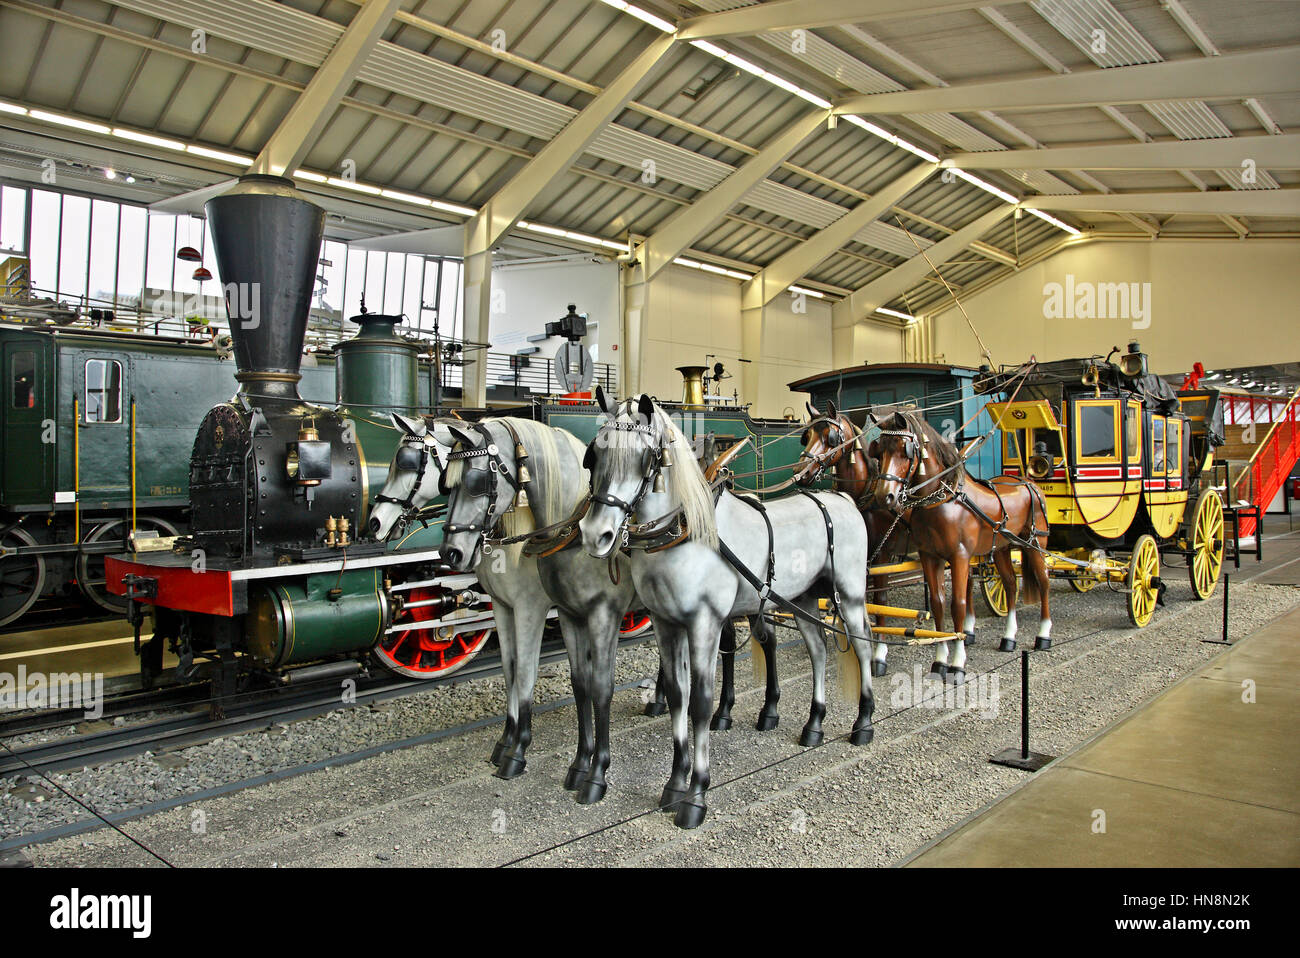 In the Swiss Museum of Transport (Verkehrshaus der Schweiz) in Lucerne, Switzerland. - Stock Image